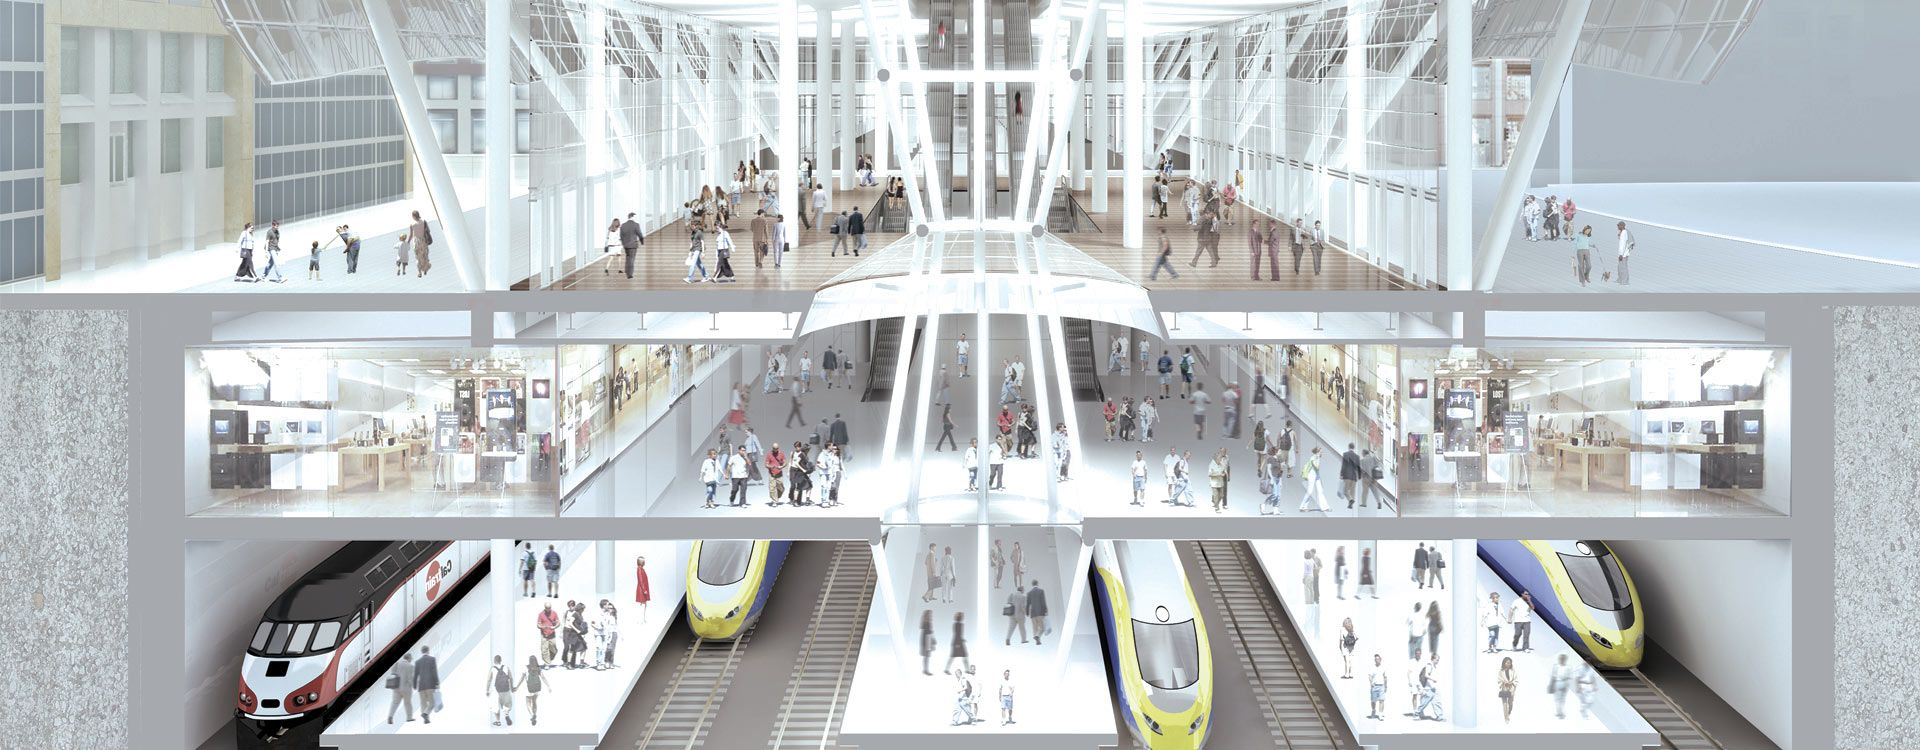 bnr-Transbay-Transit-Center_Transport-Infrastructure